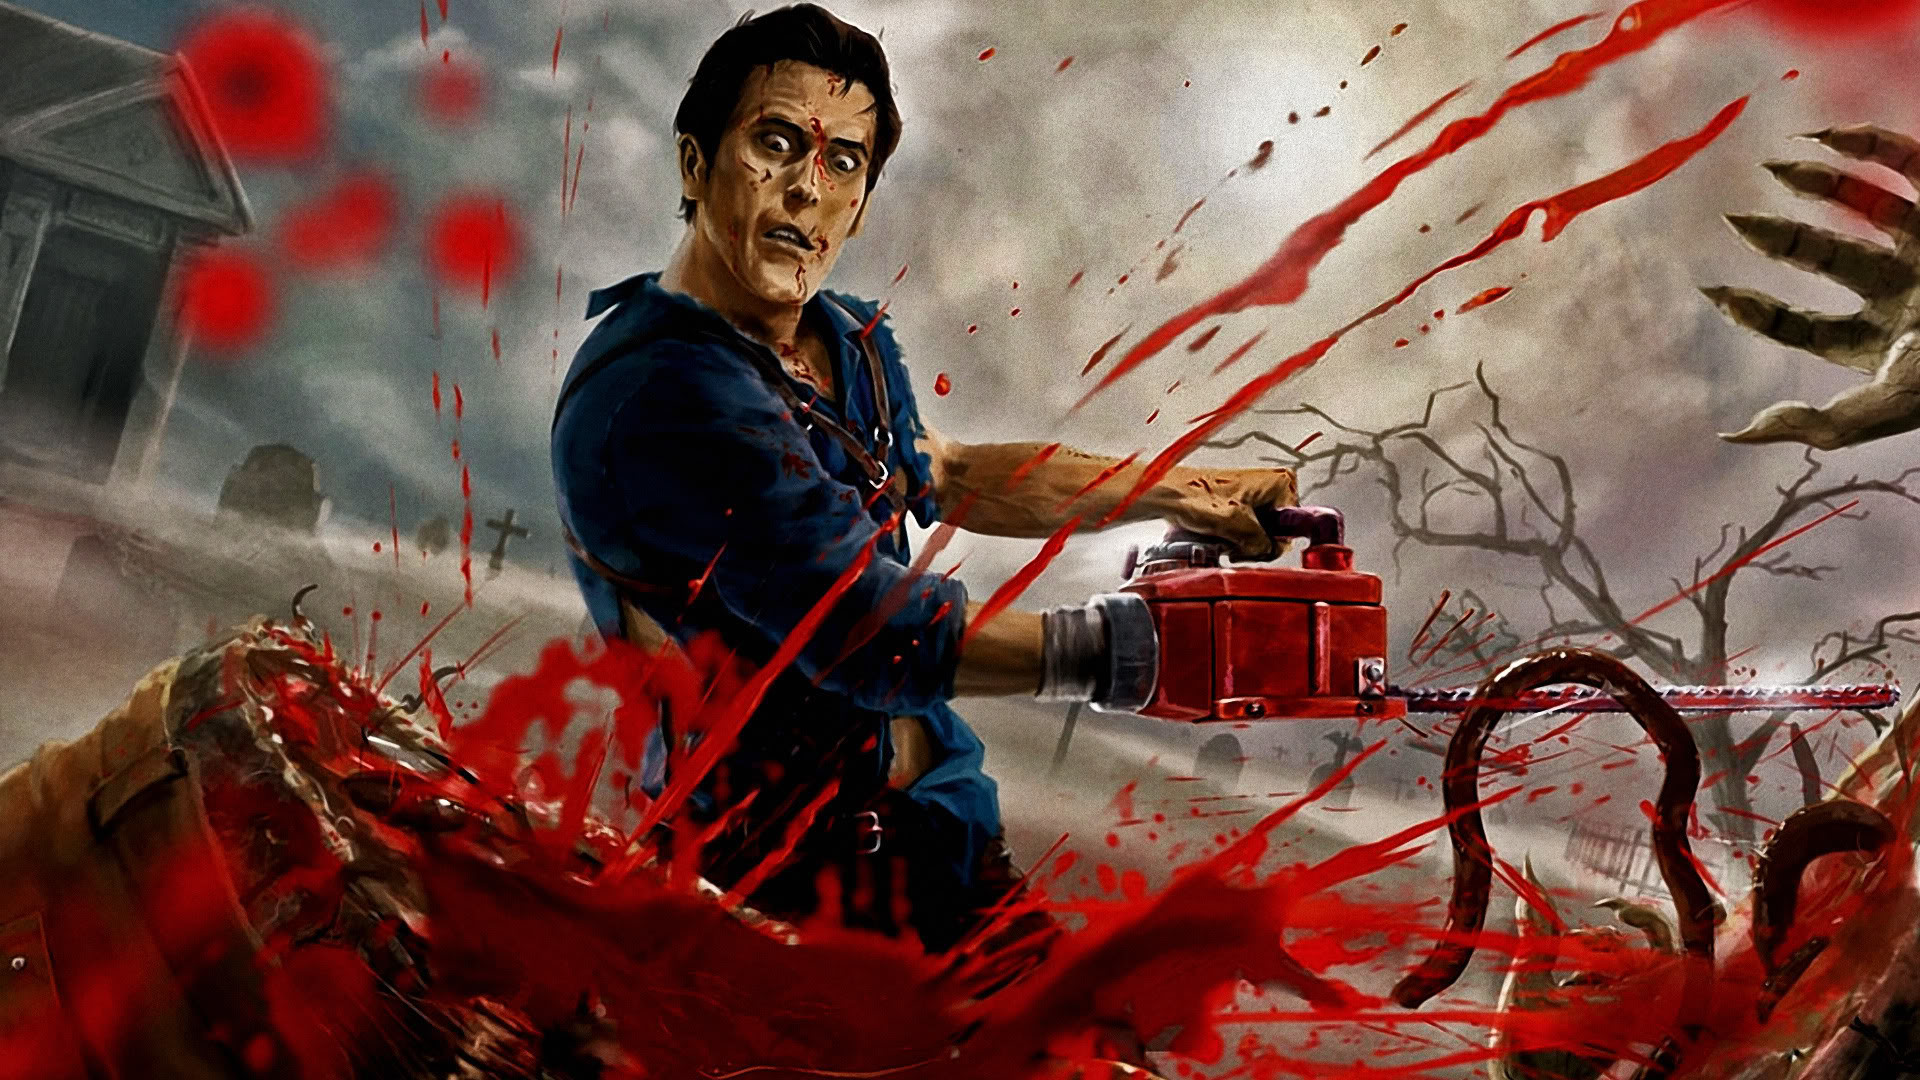 1920x1080 Ashley 'ash' j. williams the evil dead horror movie best characters